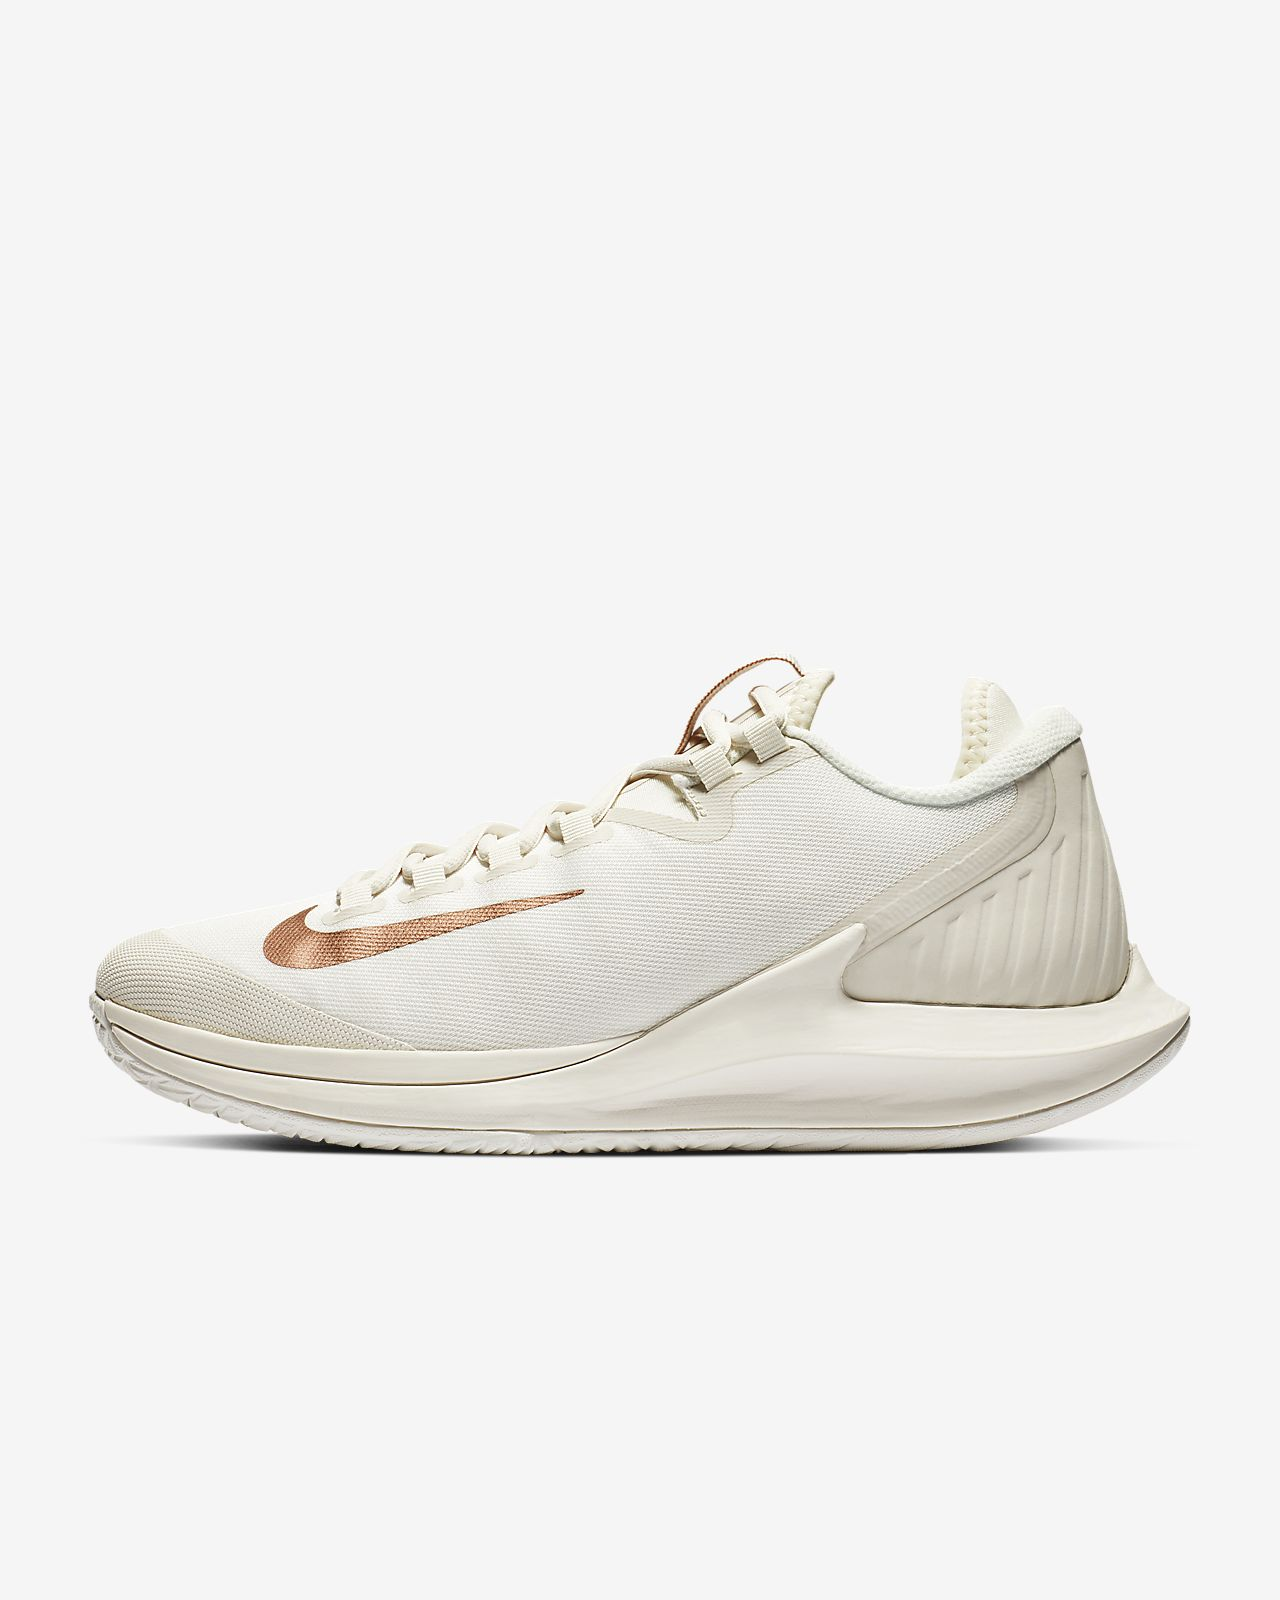 ad621da47205 NikeCourt Air Zoom Zero Women s Tennis Shoe. Nike.com